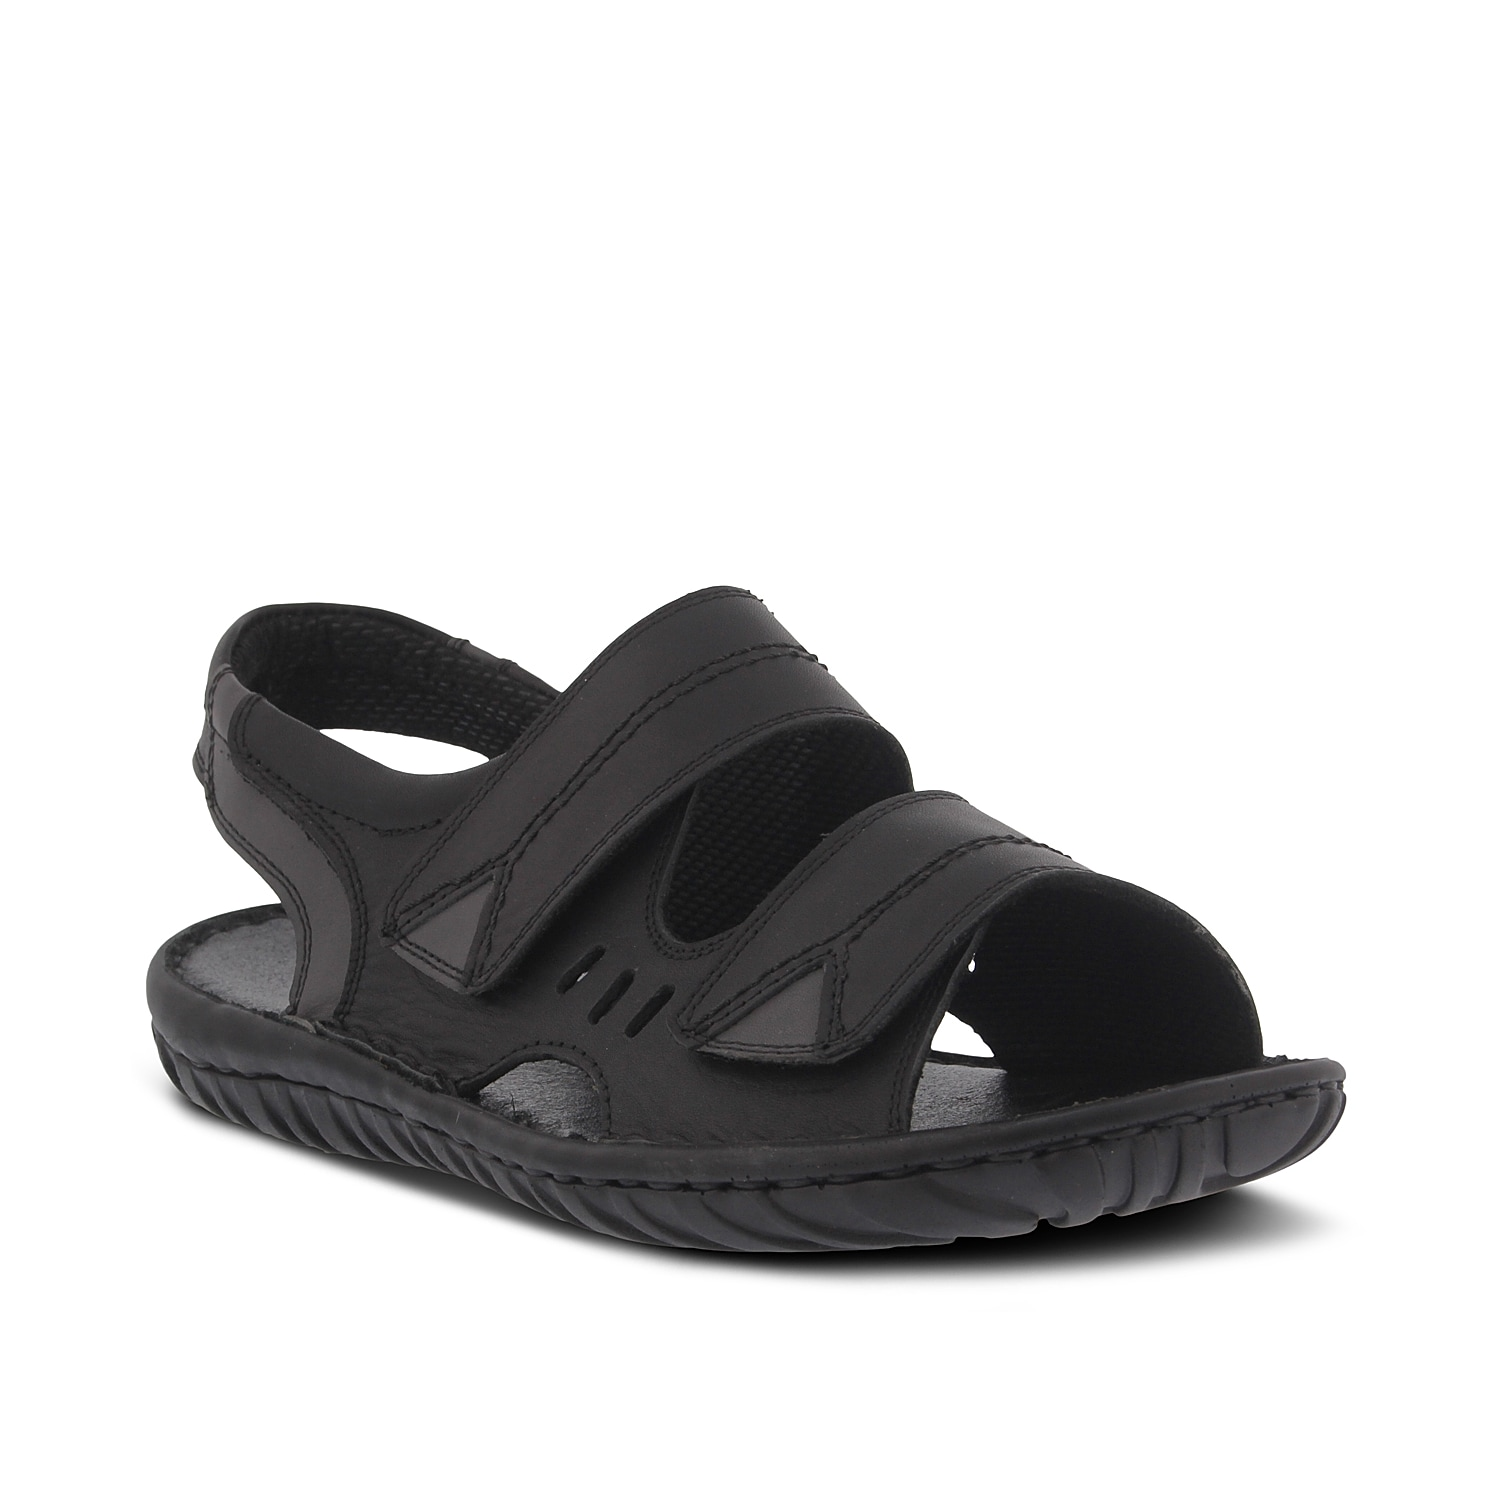 Enhance your look with the Diro sandals from Spring Step. These leather flats feature a cushioned insole to keep you going during an evening stroll or when exploring a new city.